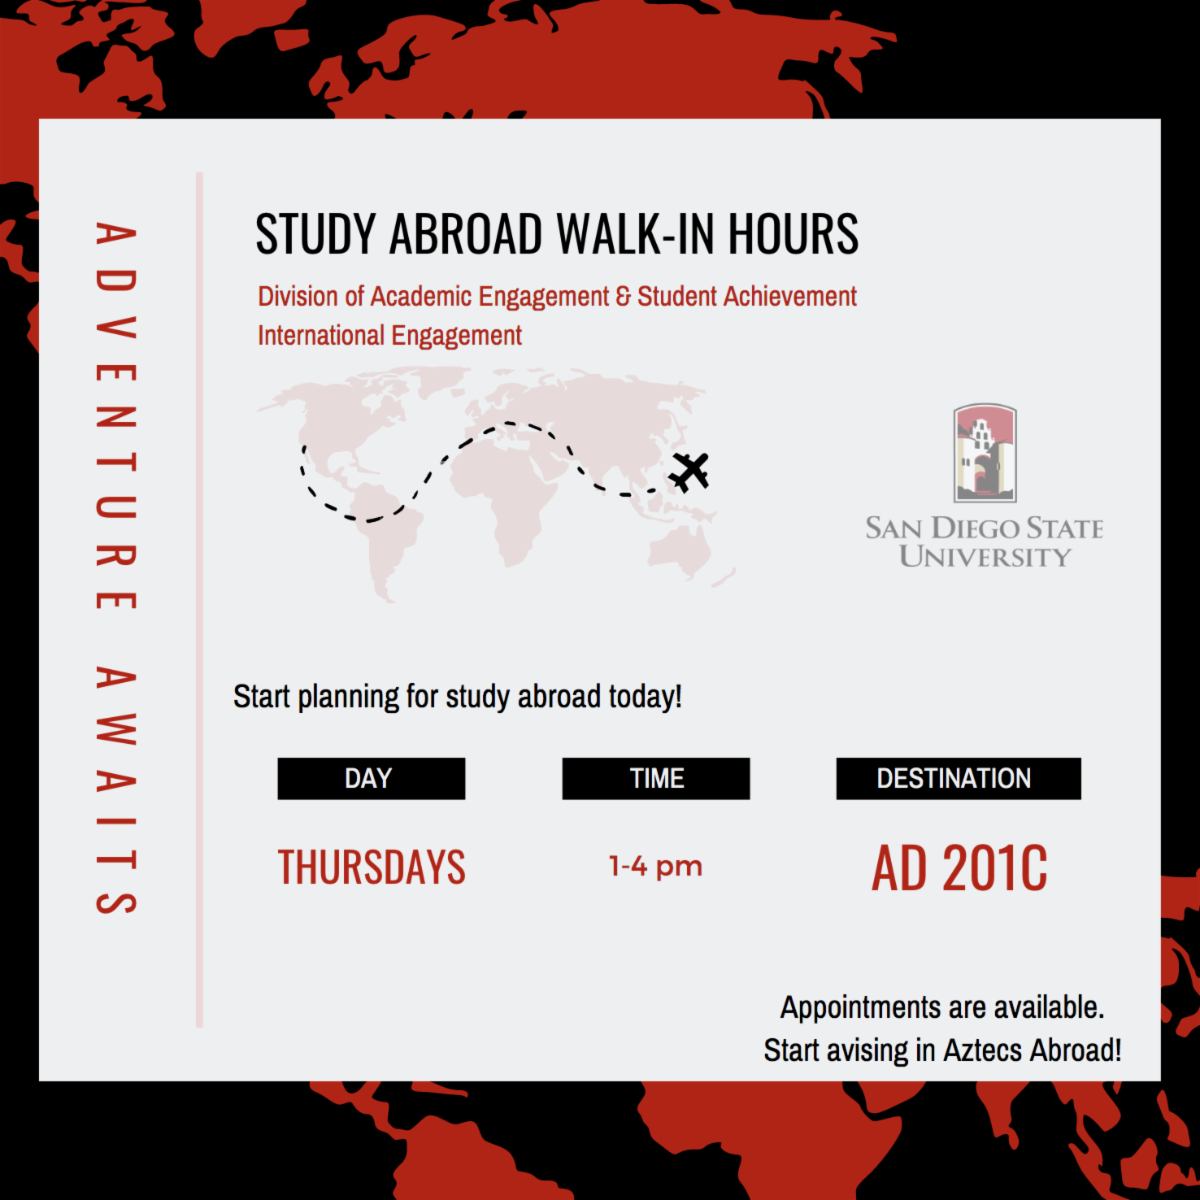 flyer for study abroad walk-ins and appointments